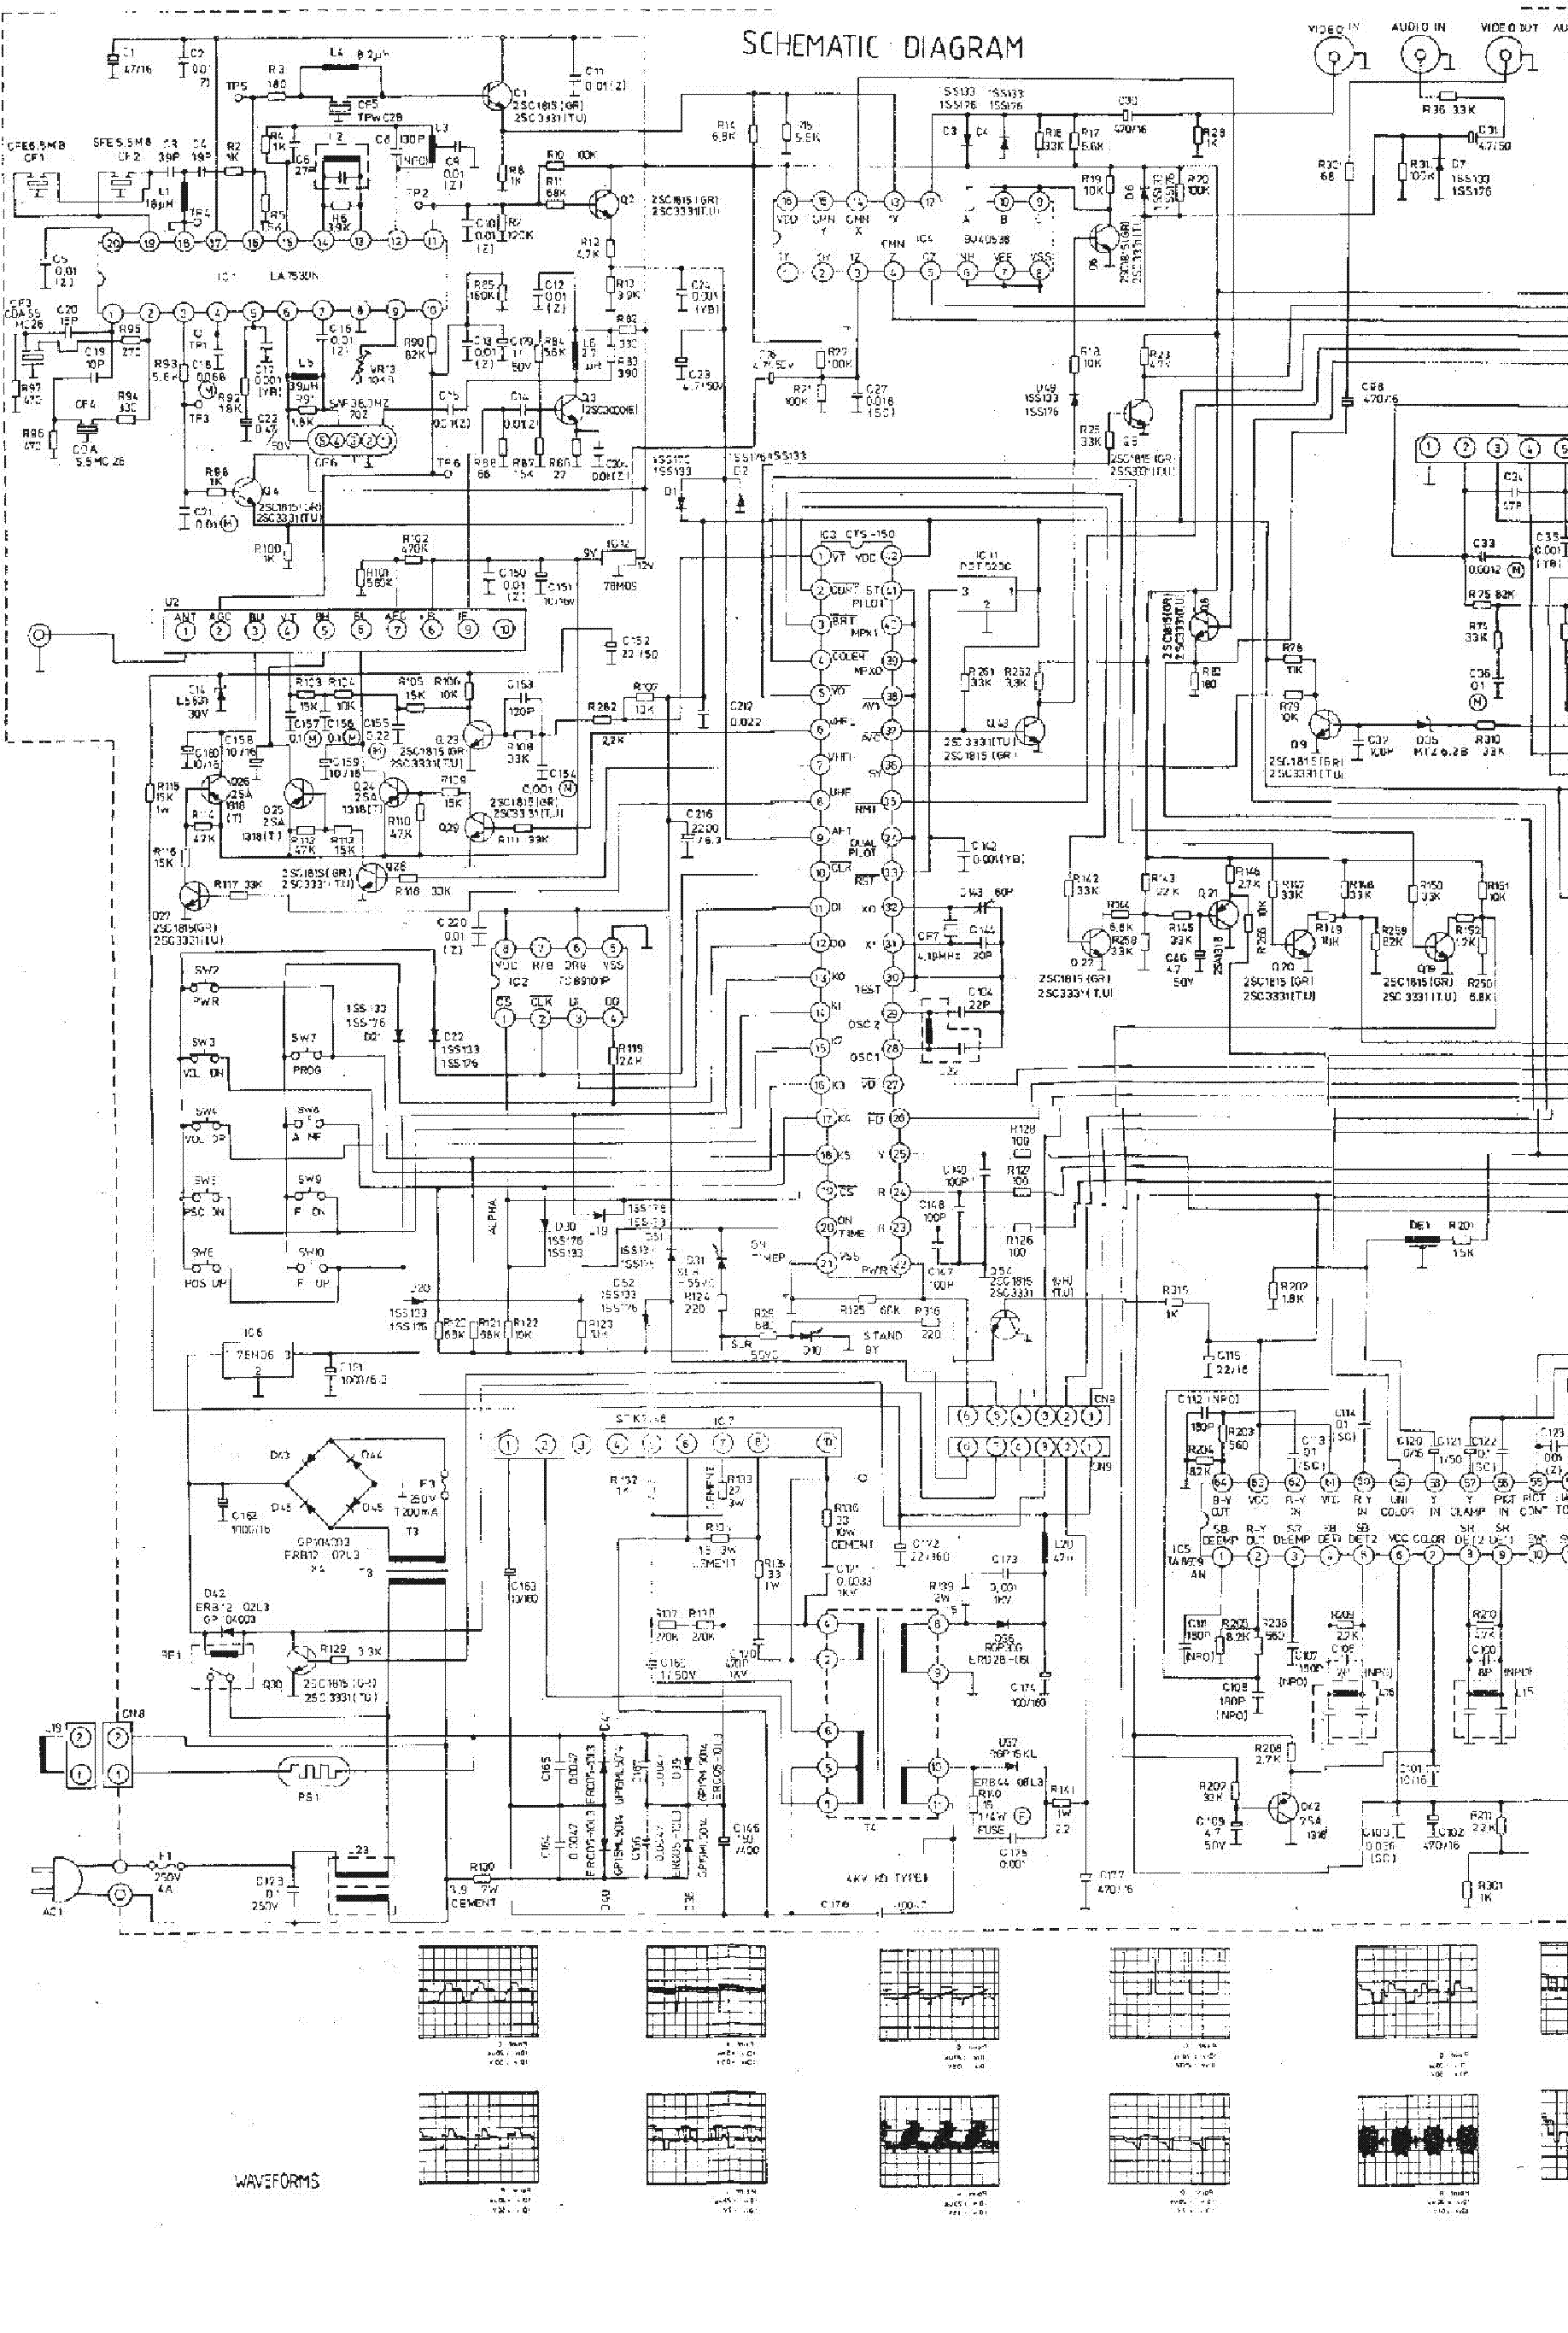 FUNAI TV2000A MK3 SCH Service Manual download, schematics